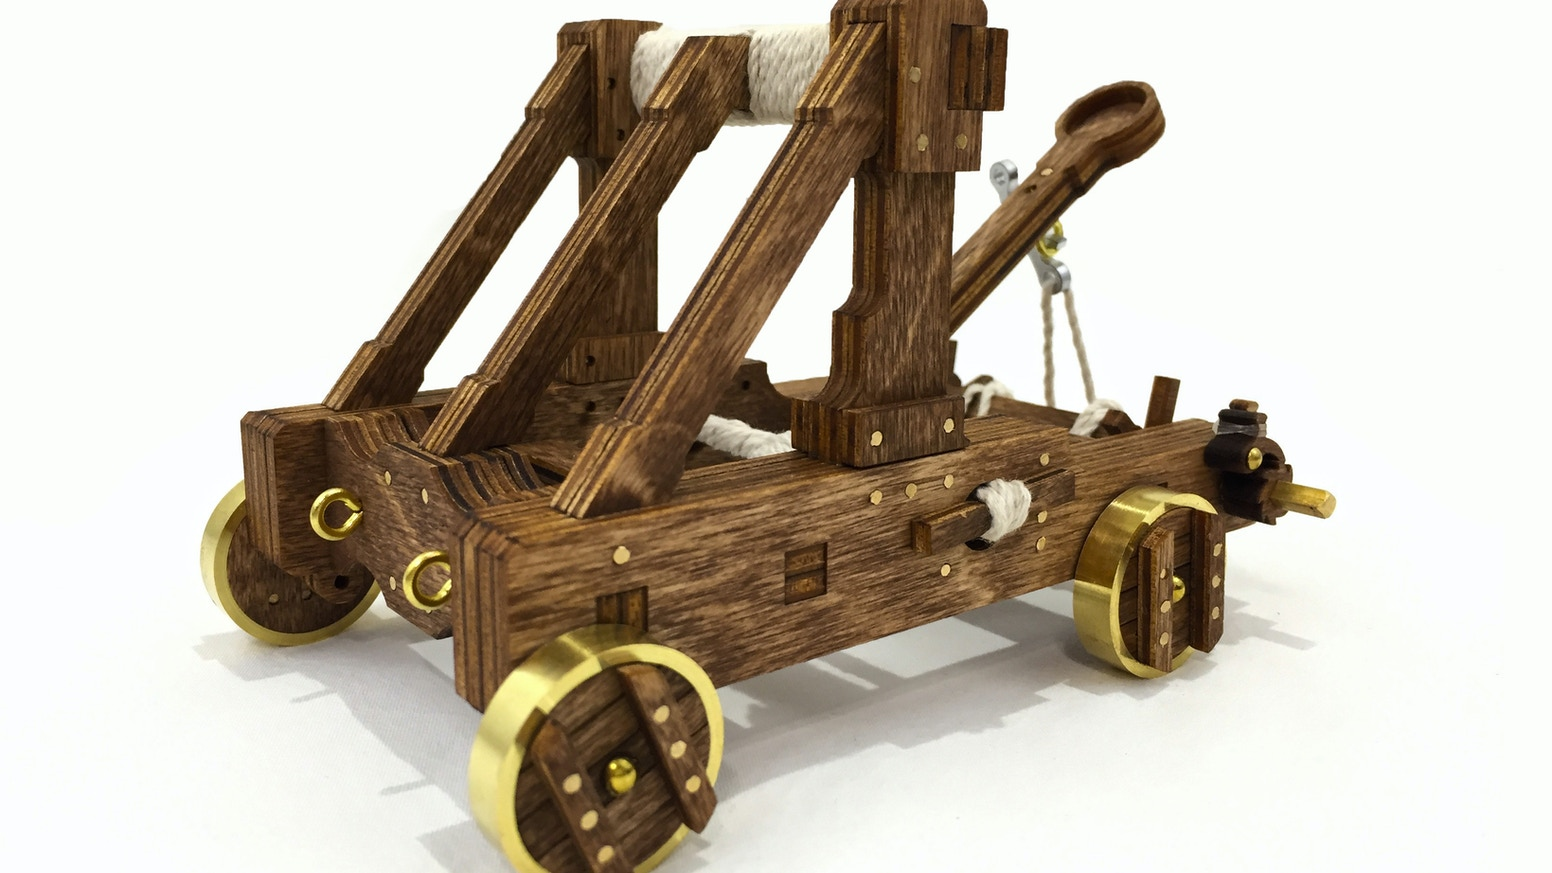 catapult kits - the ultimate desktop toy (trebuchets added